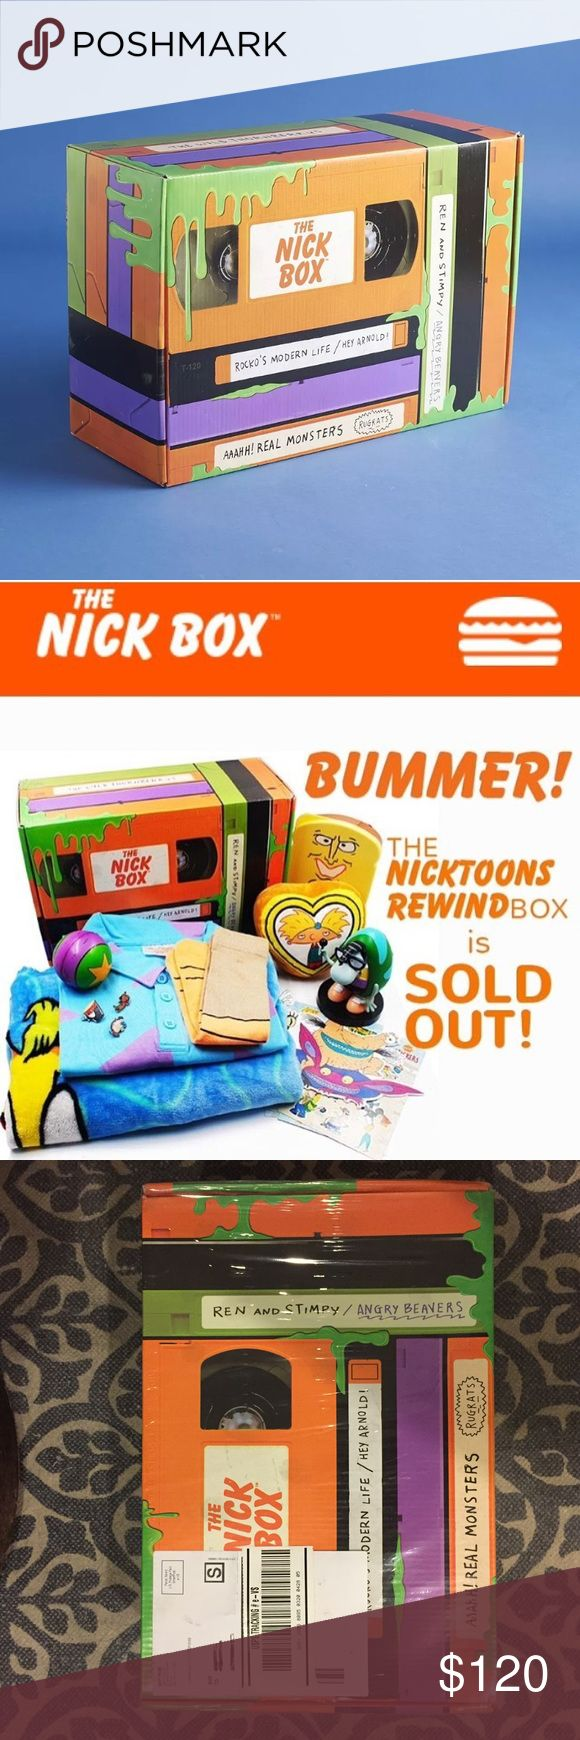 Nickelodeon Nick Box Spring 2017 Brand new, still in original shrink wrap sent by the manufacturer. Some damage done to box (see photos) when it was shipped to me.  •Powdered Toast Man Sandwich Container •Rocko's Modern Life Polo Shirt (size LARGE) •Rocko's Modern Life Socks •Rocko's Modern Life Blanket •Ren and Stimpy Enamel Pins •Aaah!!! Real Monsters Vinyl Decal •Filburt Vinyl Collectible •Rugrats Stress Ball •Hey Arnold Plush •CatDog Stickers •Angry Beaver Stickers •The Wild Thornberrys…